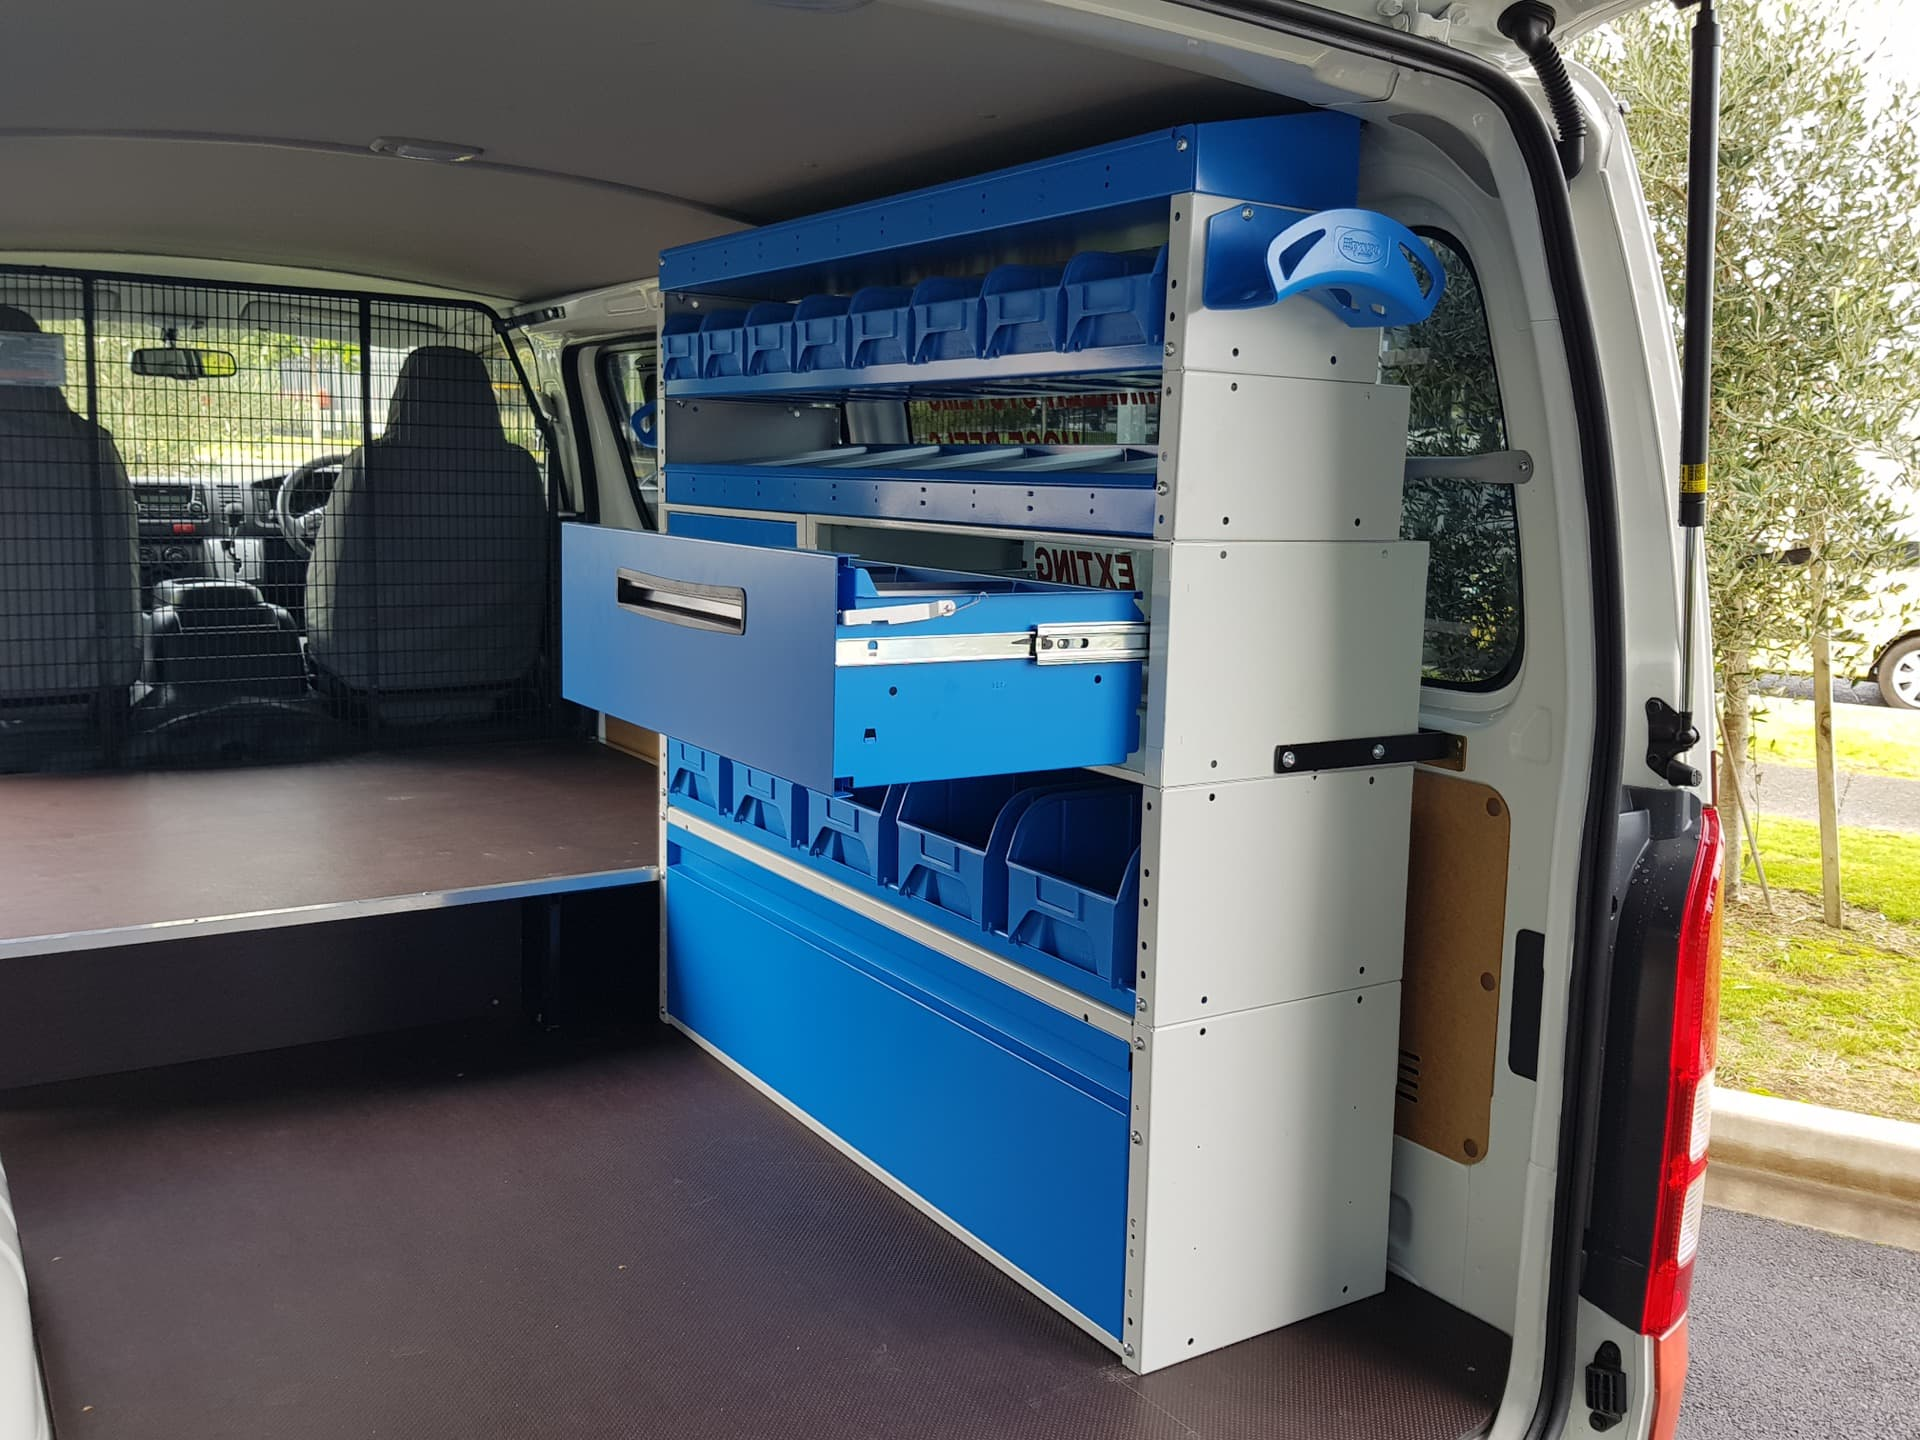 Commercial van fitout rack with drawers and shelves